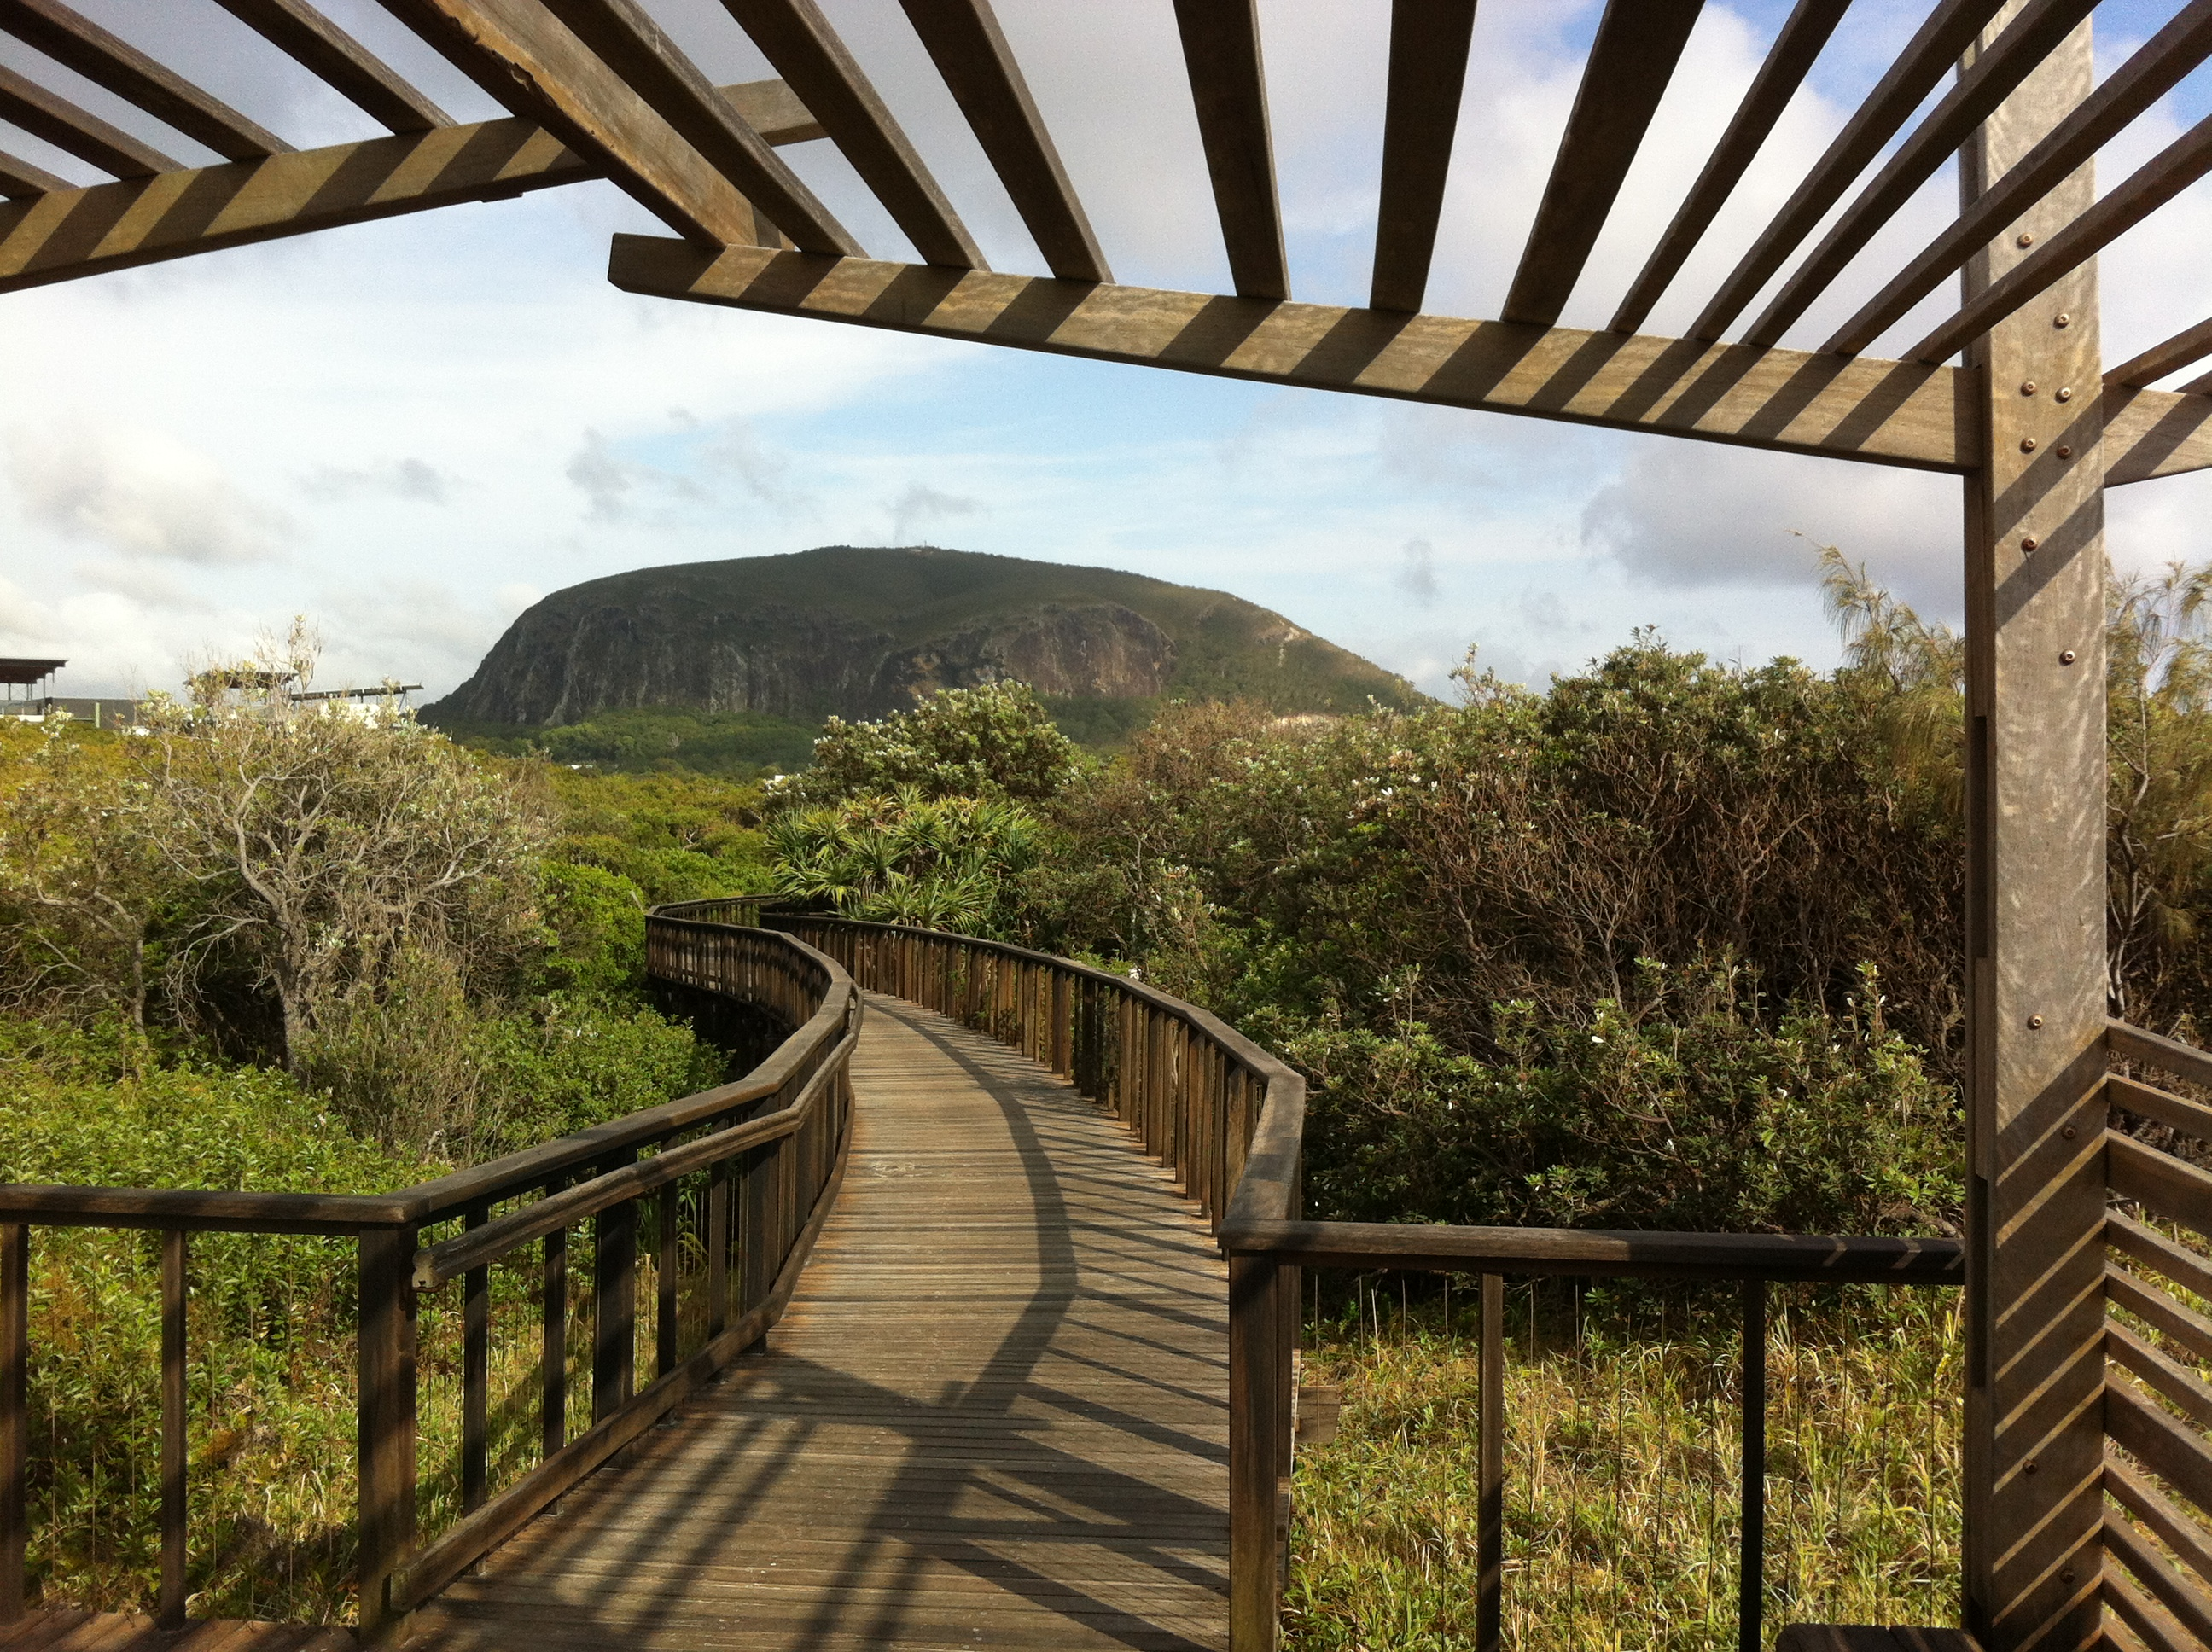 Mount Coolum Beach boardwalk